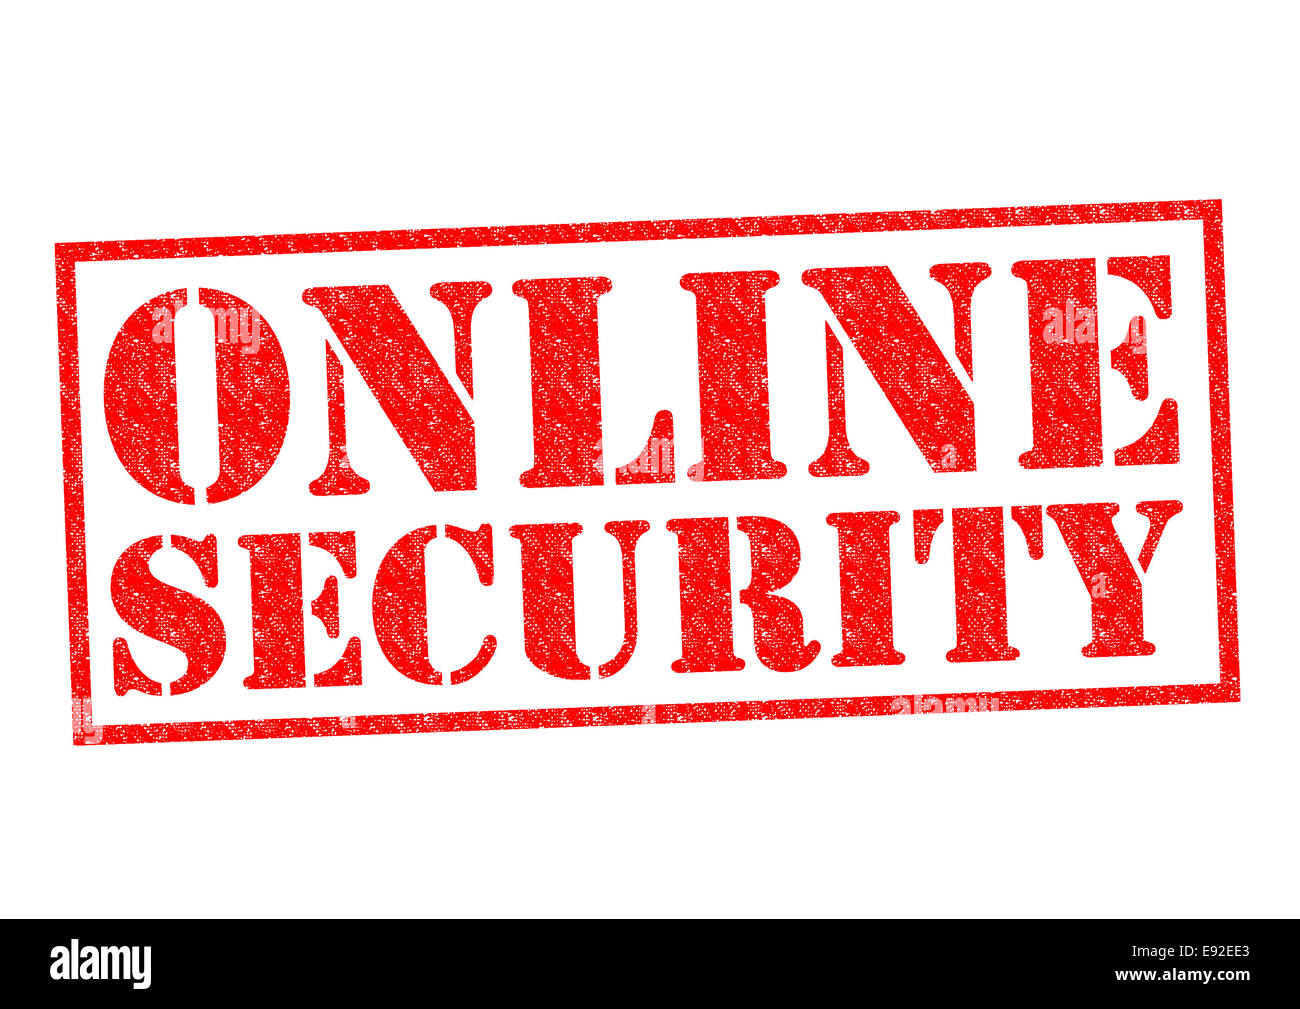 Online Security Stock Photos & Online Security Stock Images